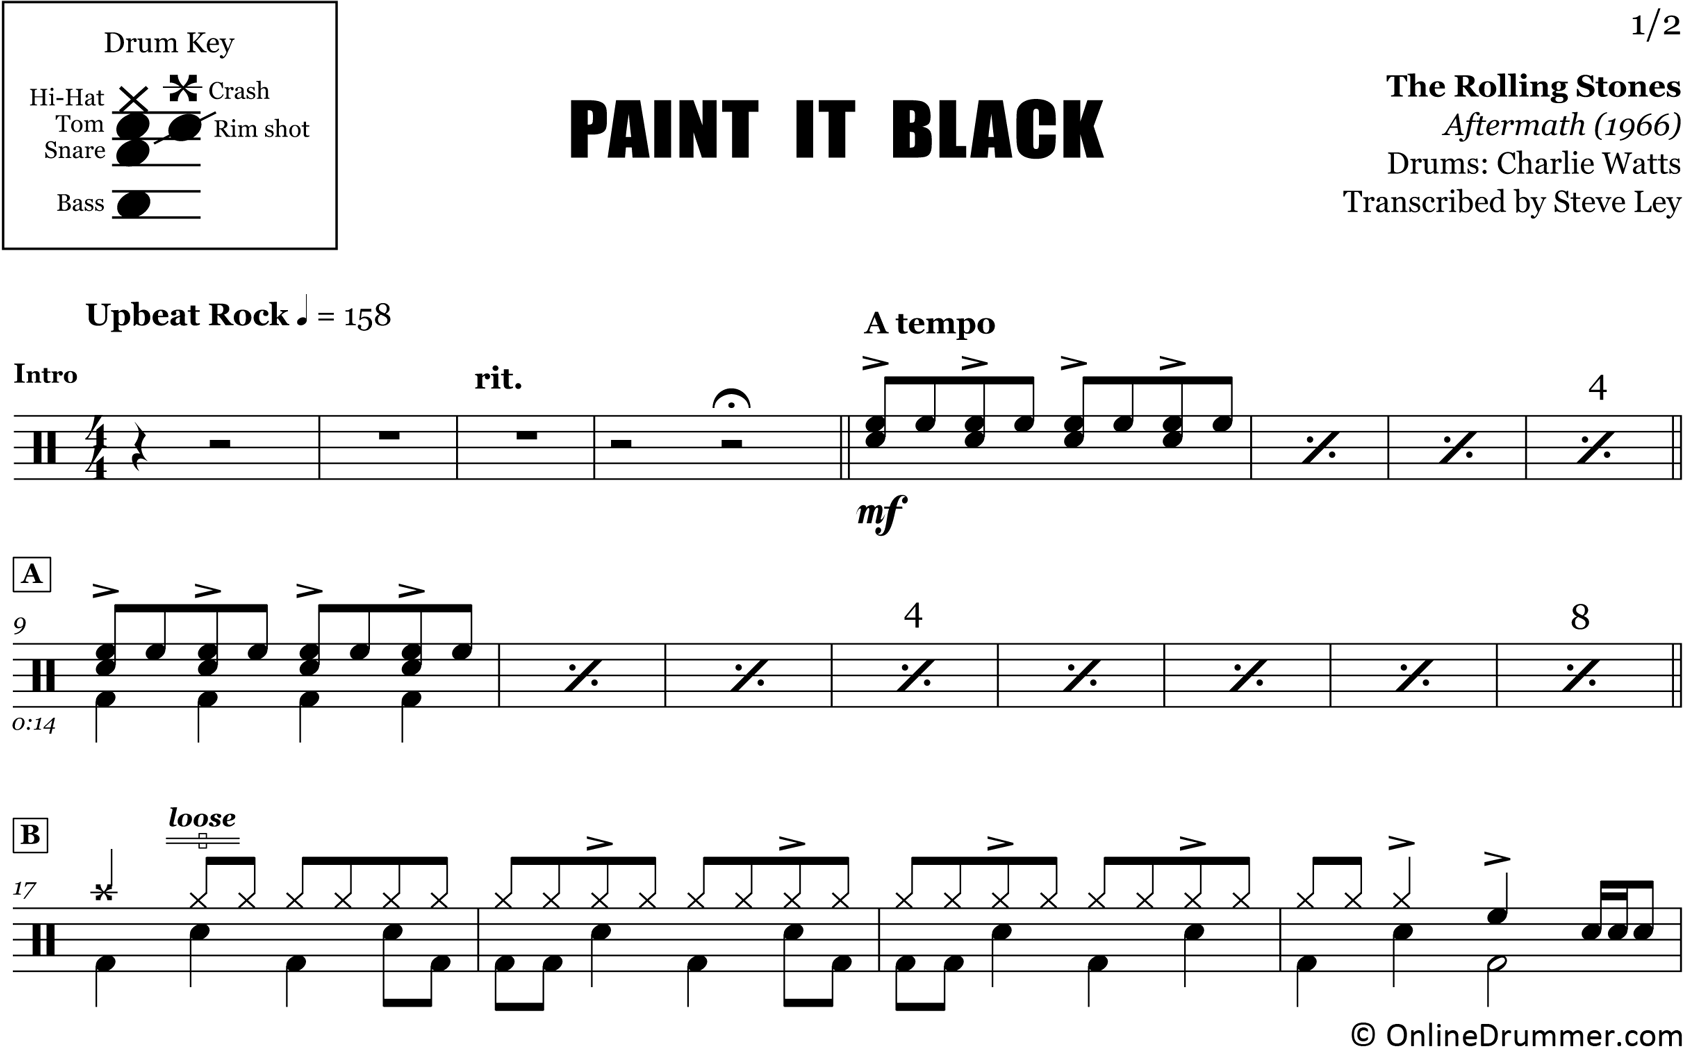 Paint It Black - The Rolling Stones - Drum Sheet Music